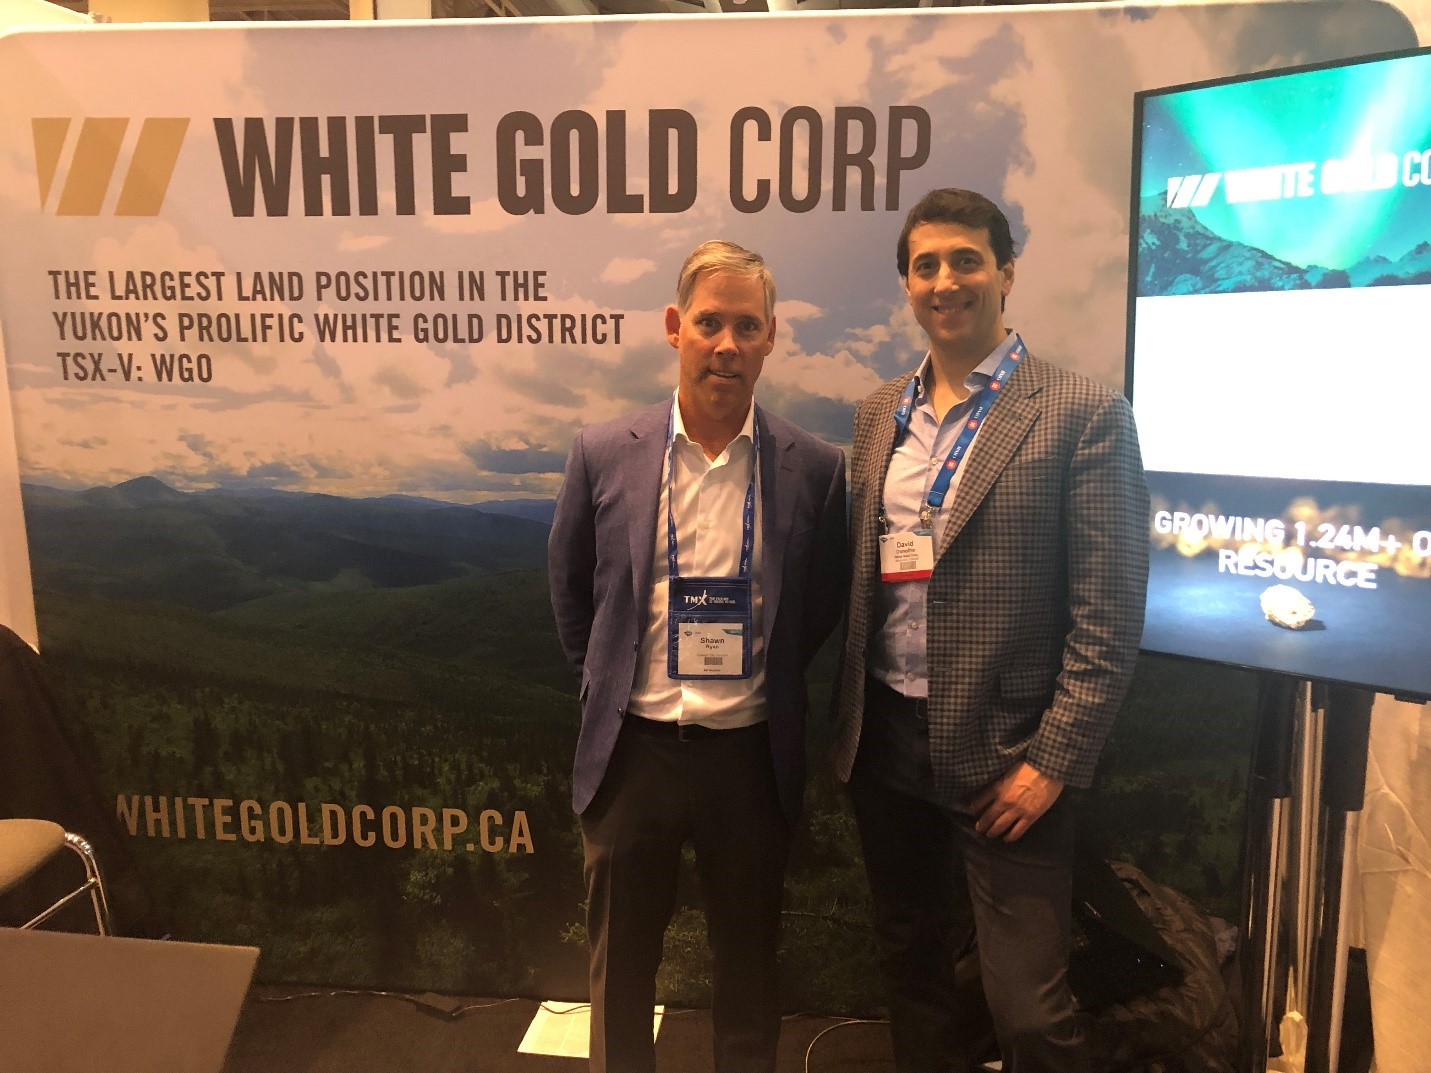 Metals News - Interview with David D'Onofrio, CEO, and Shawn